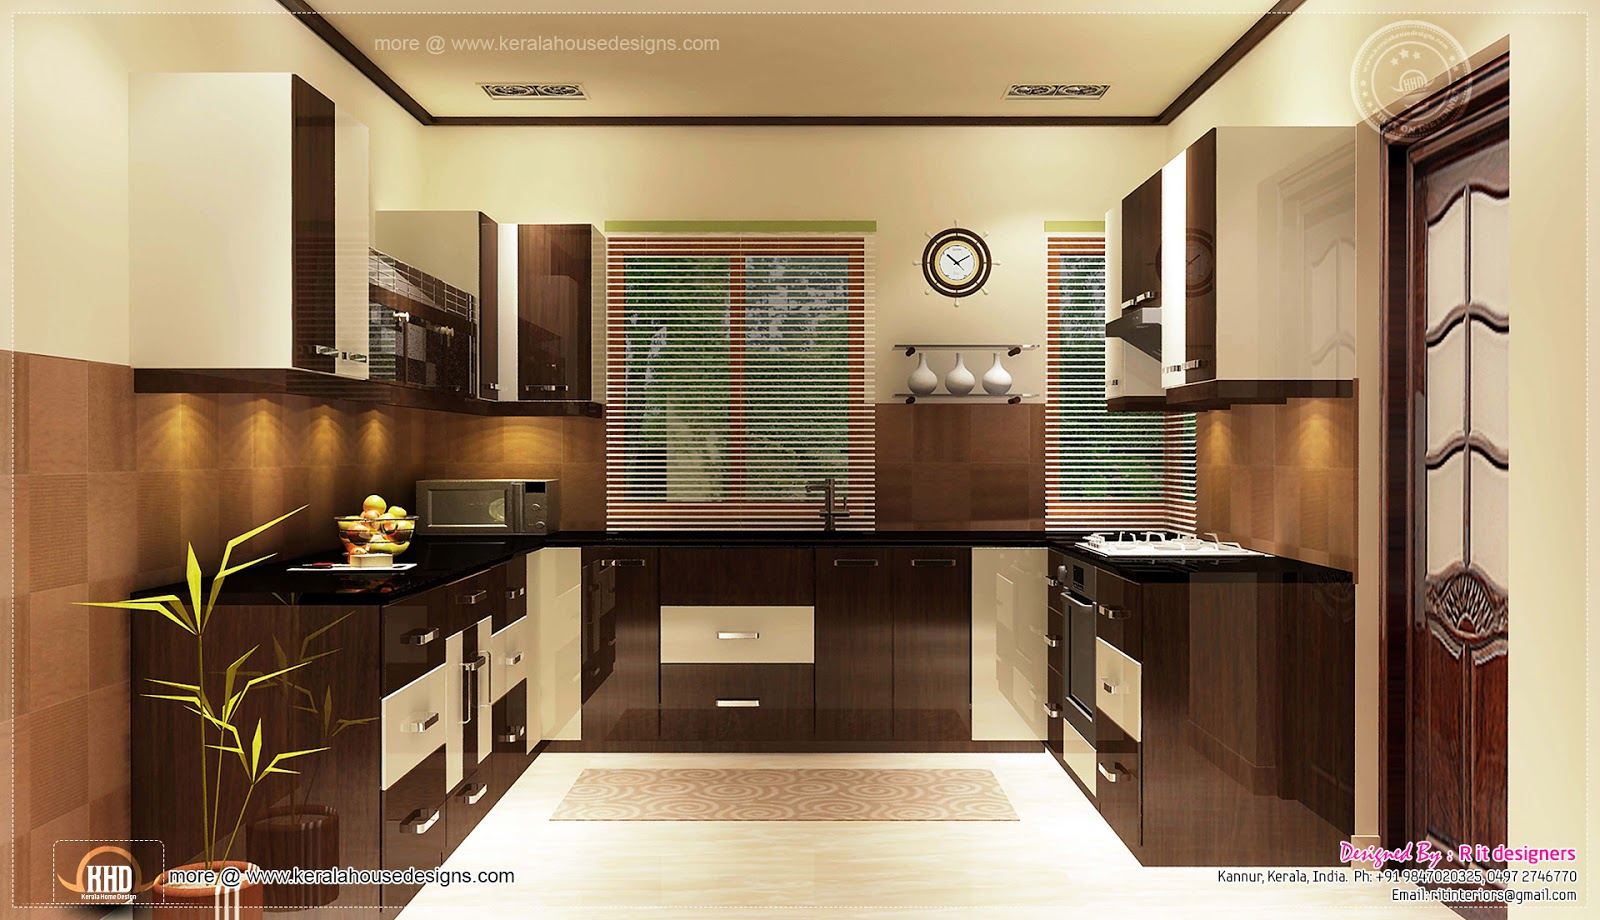 Home interior designs by rit designers kerala home for Interior home